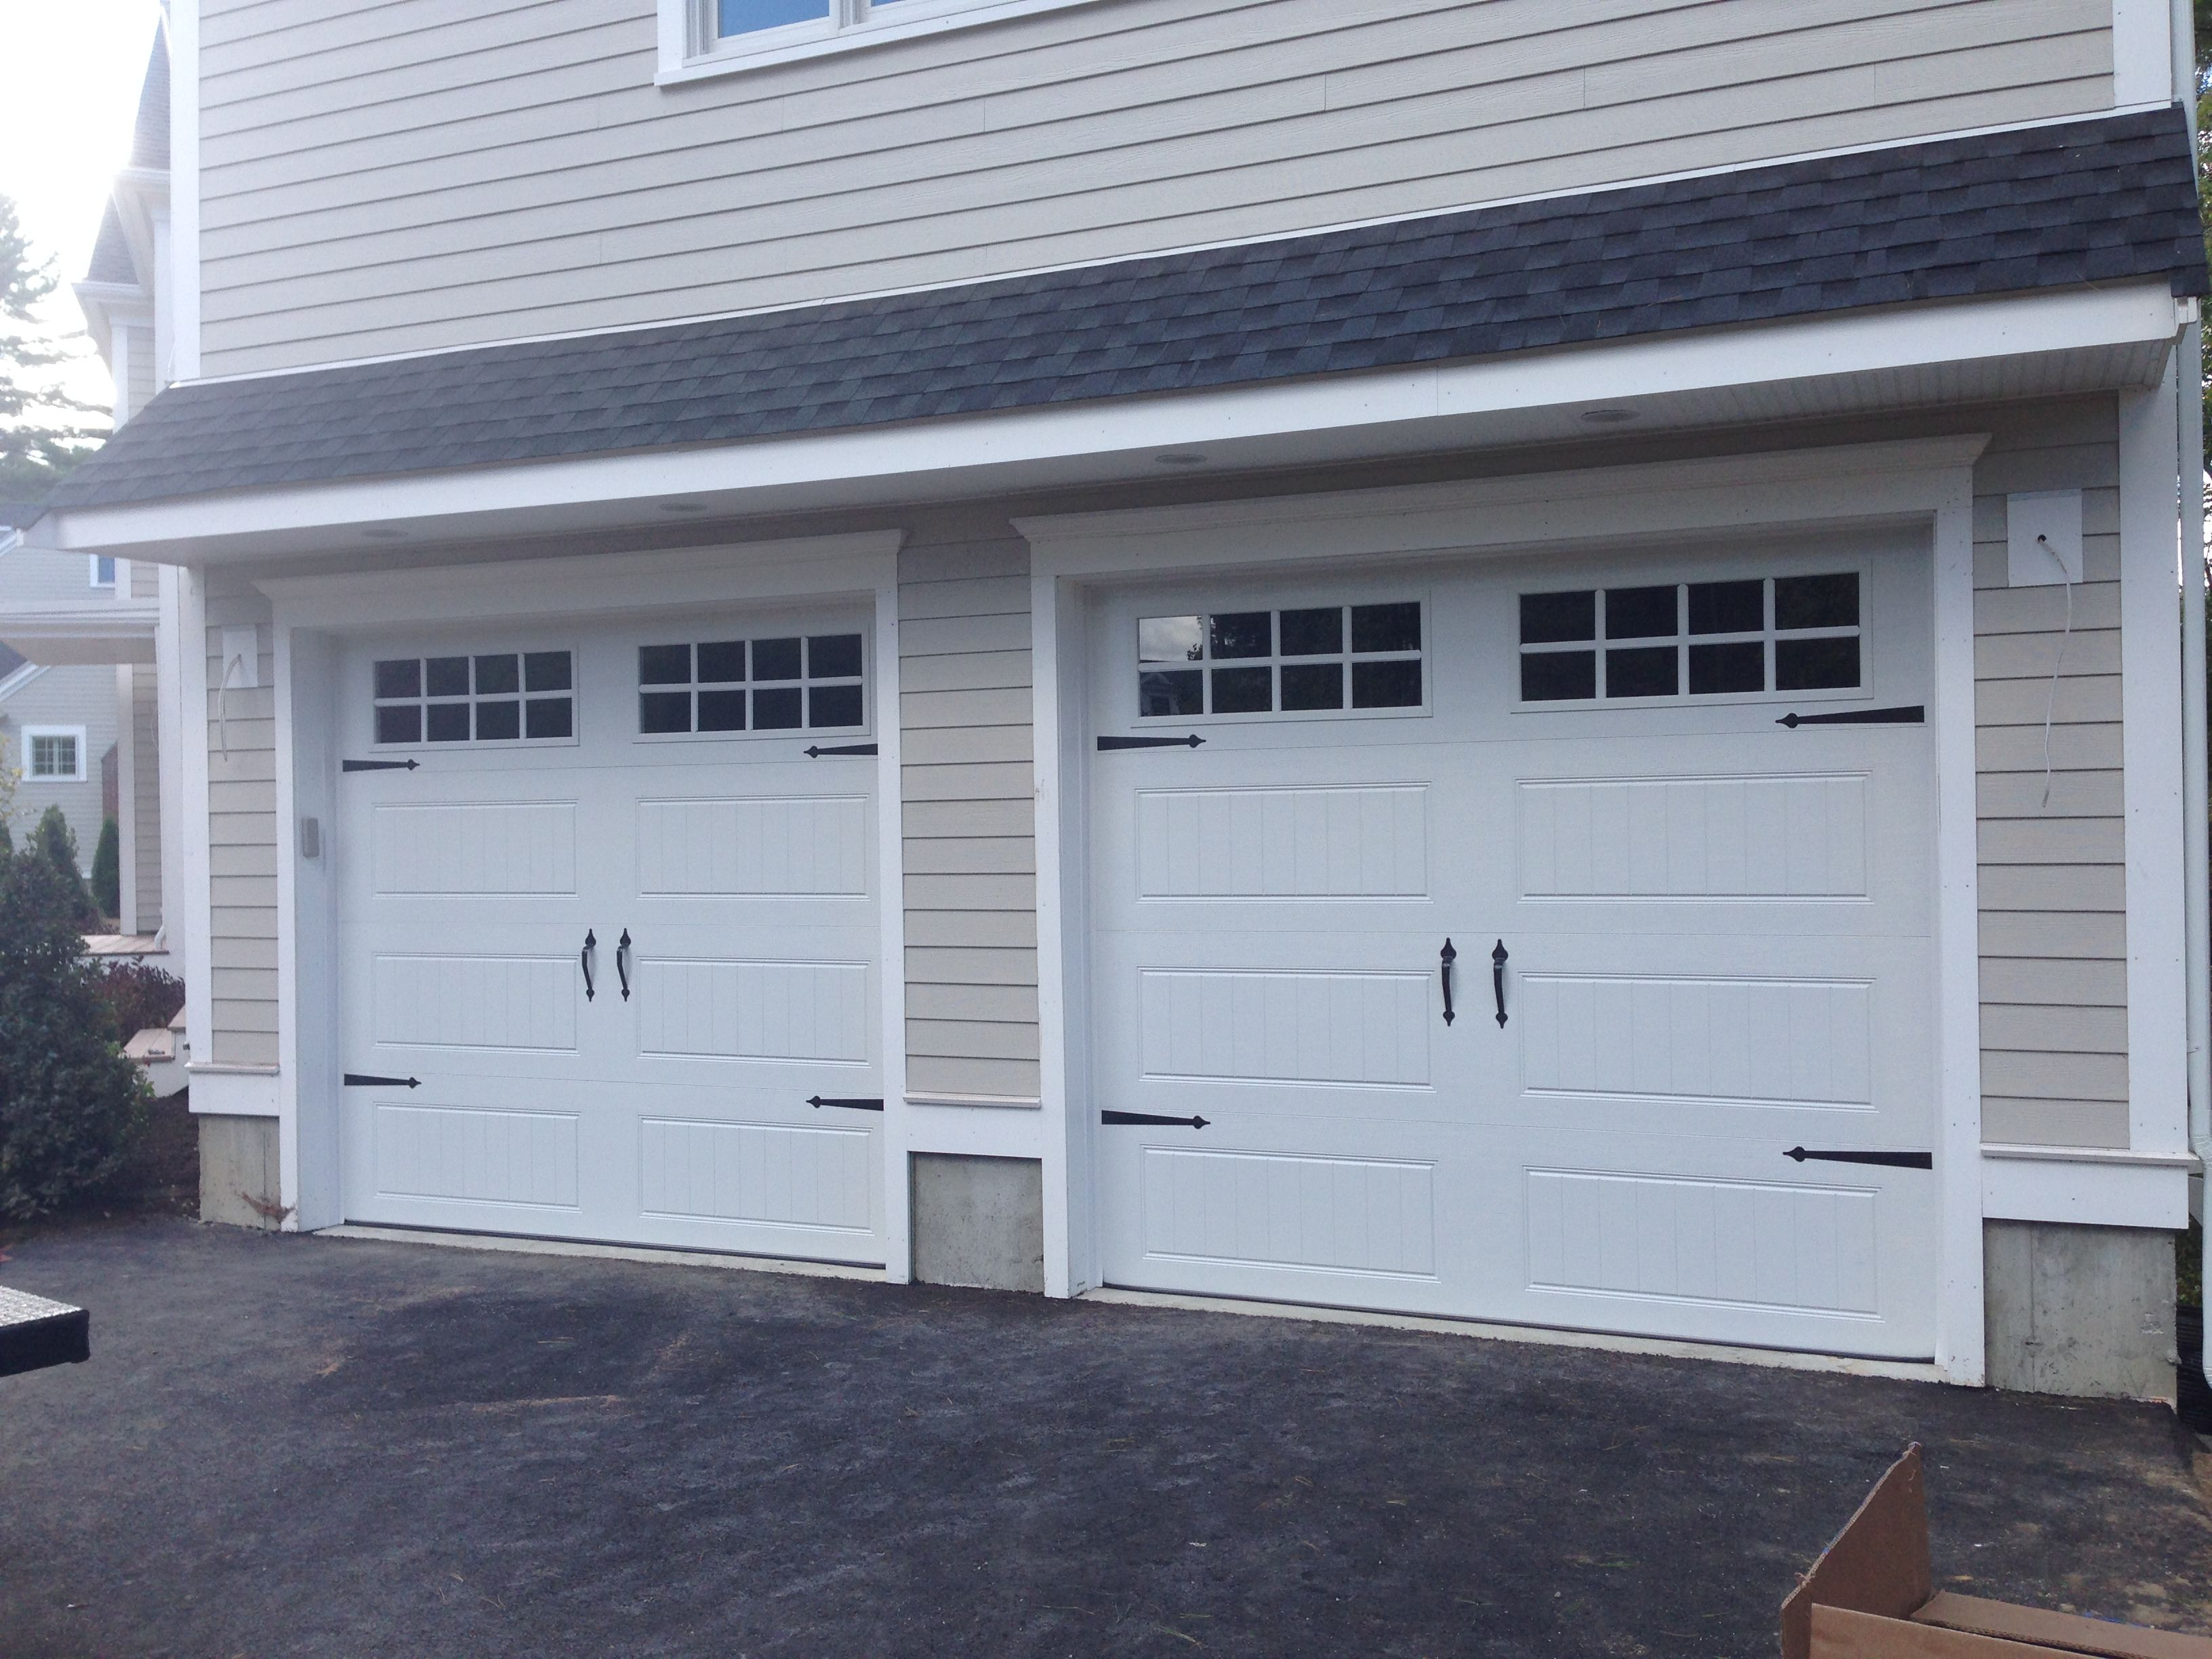 C H I Overhead Doors Model 5916 Long Panel In White With Stockton Glass Call Us At 800 790 1123 Or Visi Garage Doors Carriage House Doors Garage Door Styles